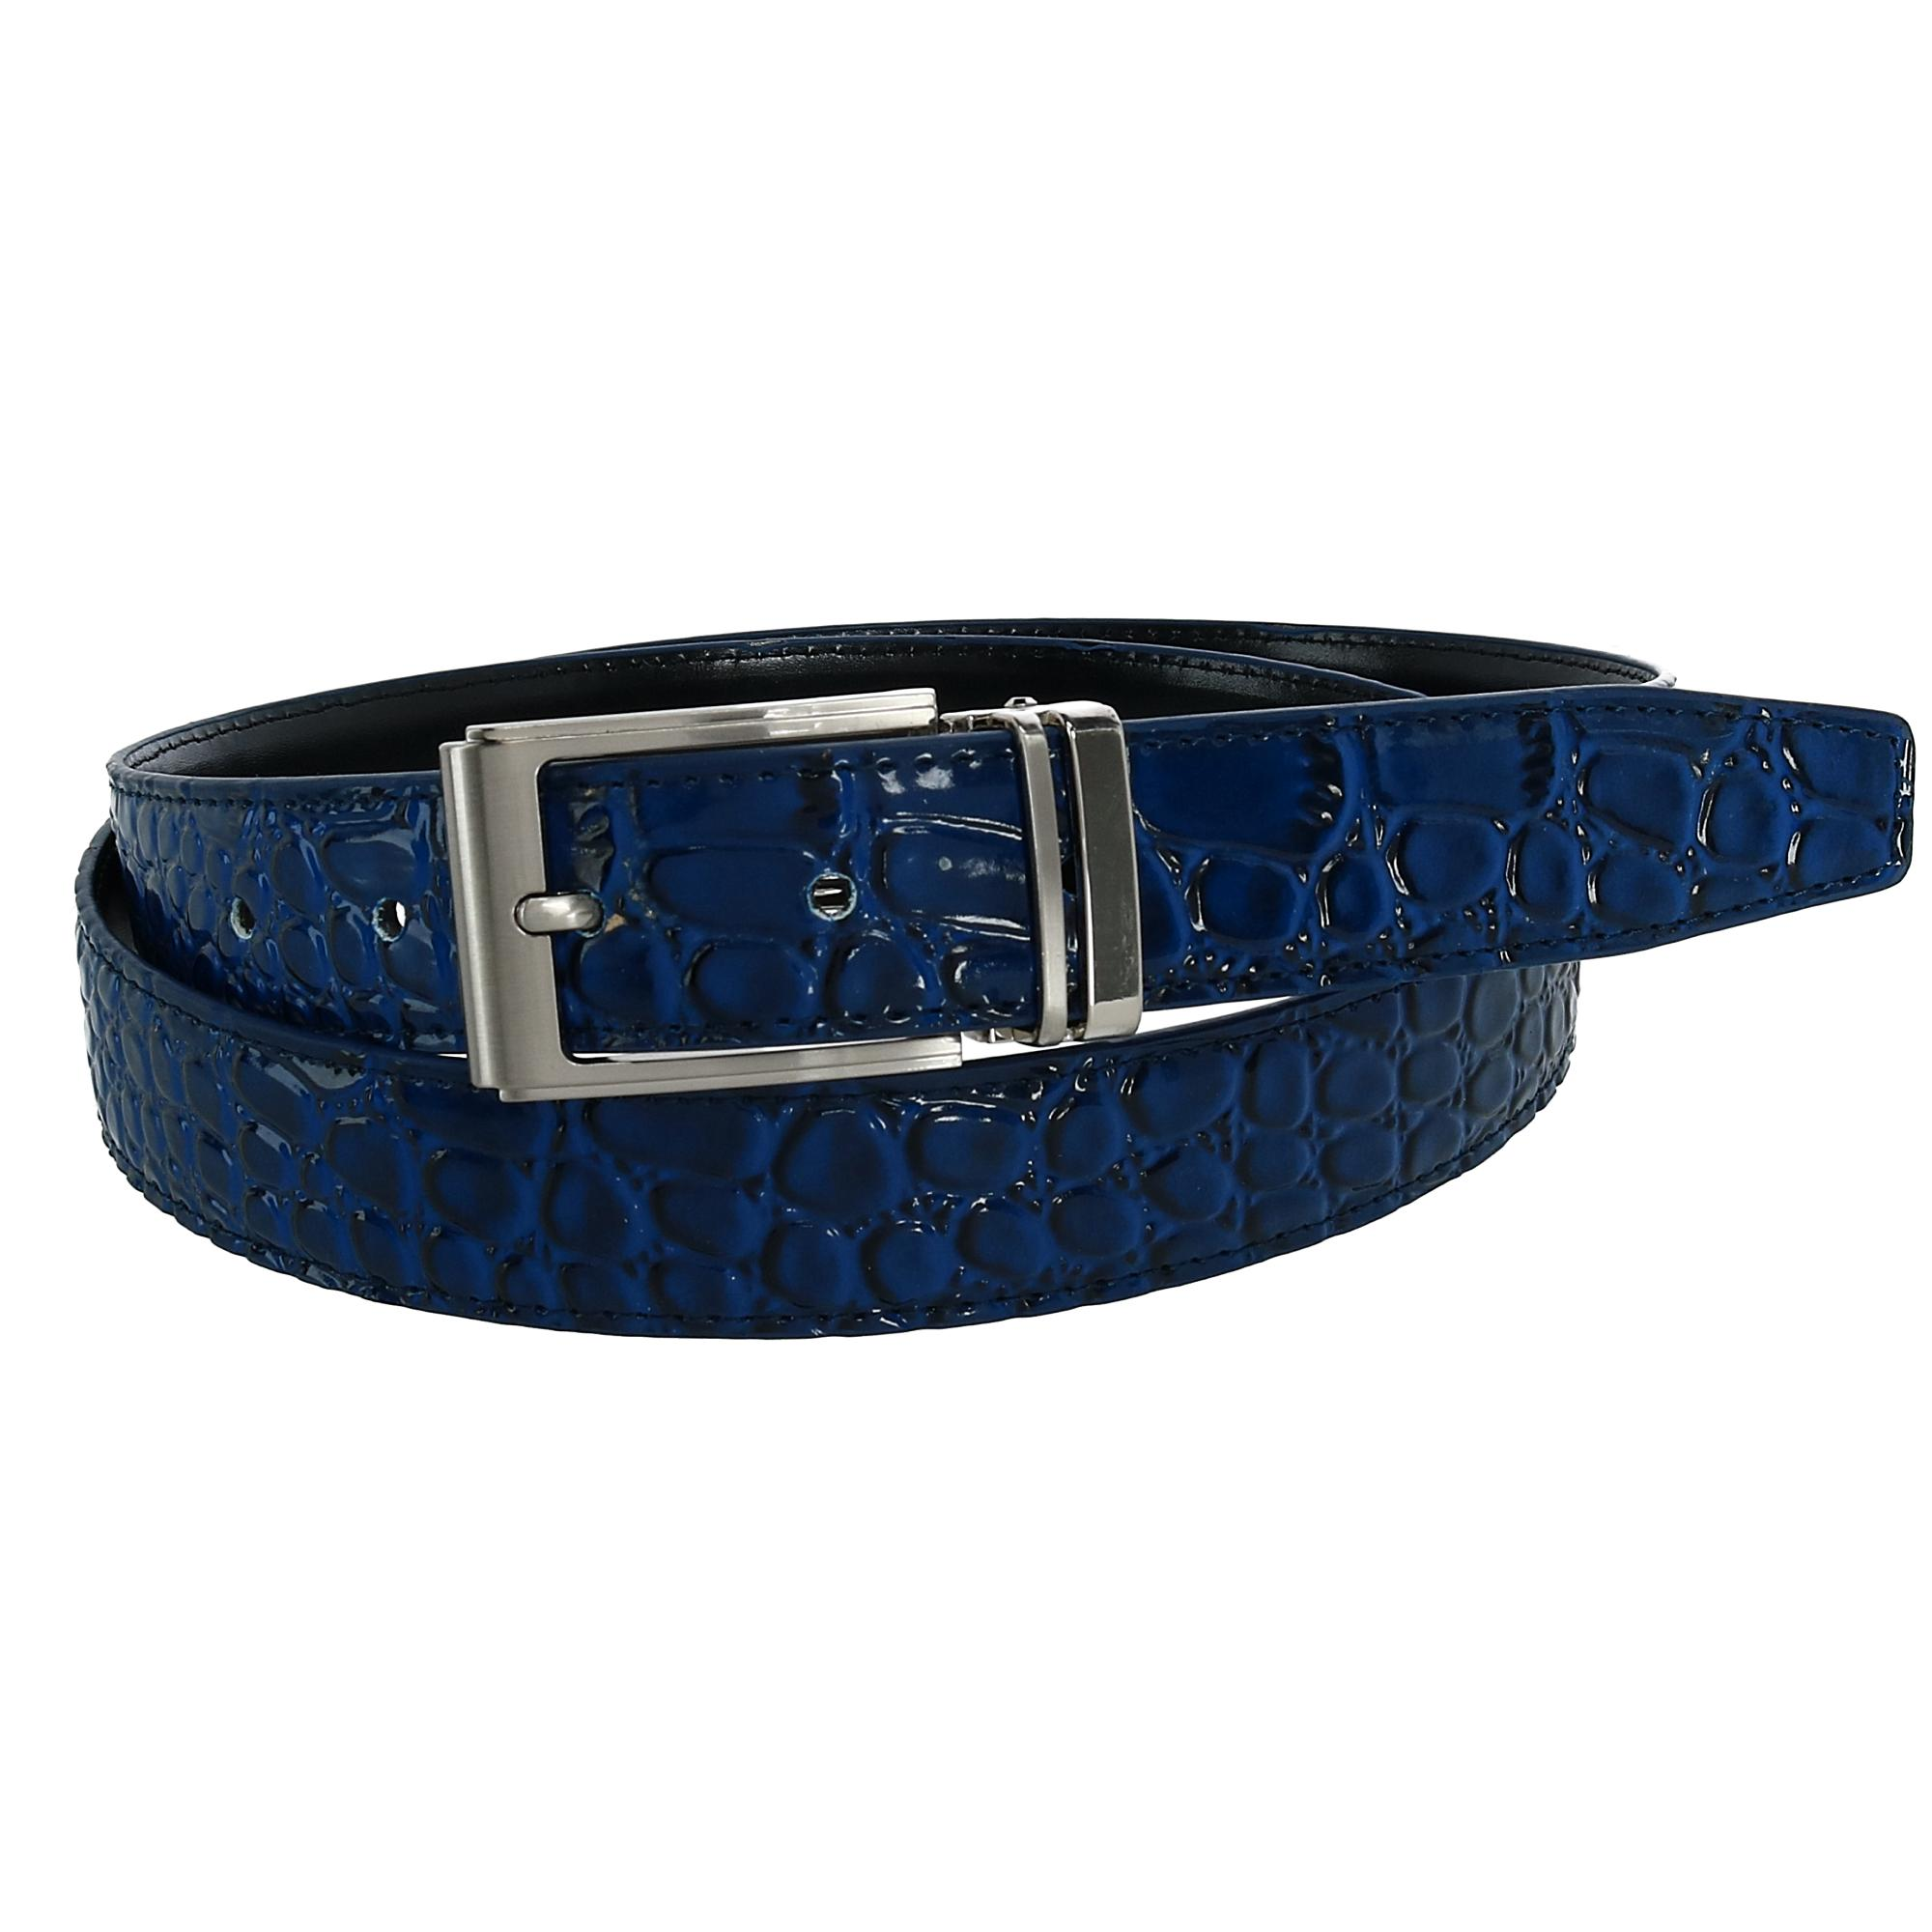 CTM_Leather_Croc_Print_Dress_Belt_with_Clamp_On_Buckle_-_Navy_40